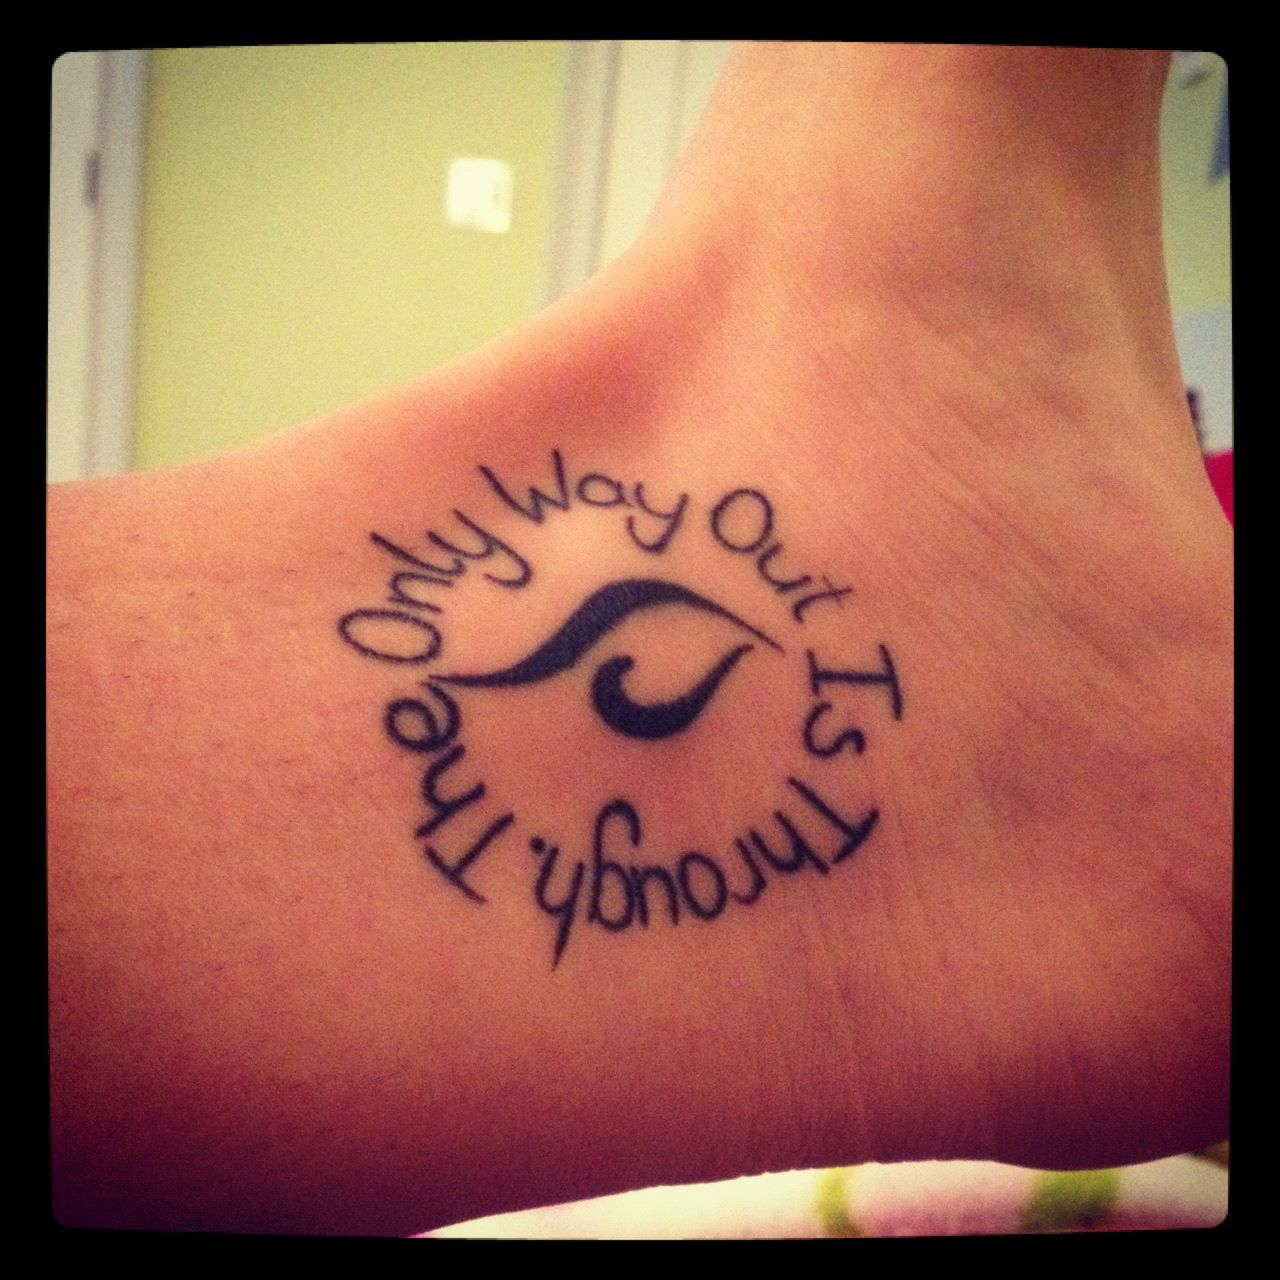 My Recovery Tattoo. 1 Year Ladies And Gents. 4/19/11